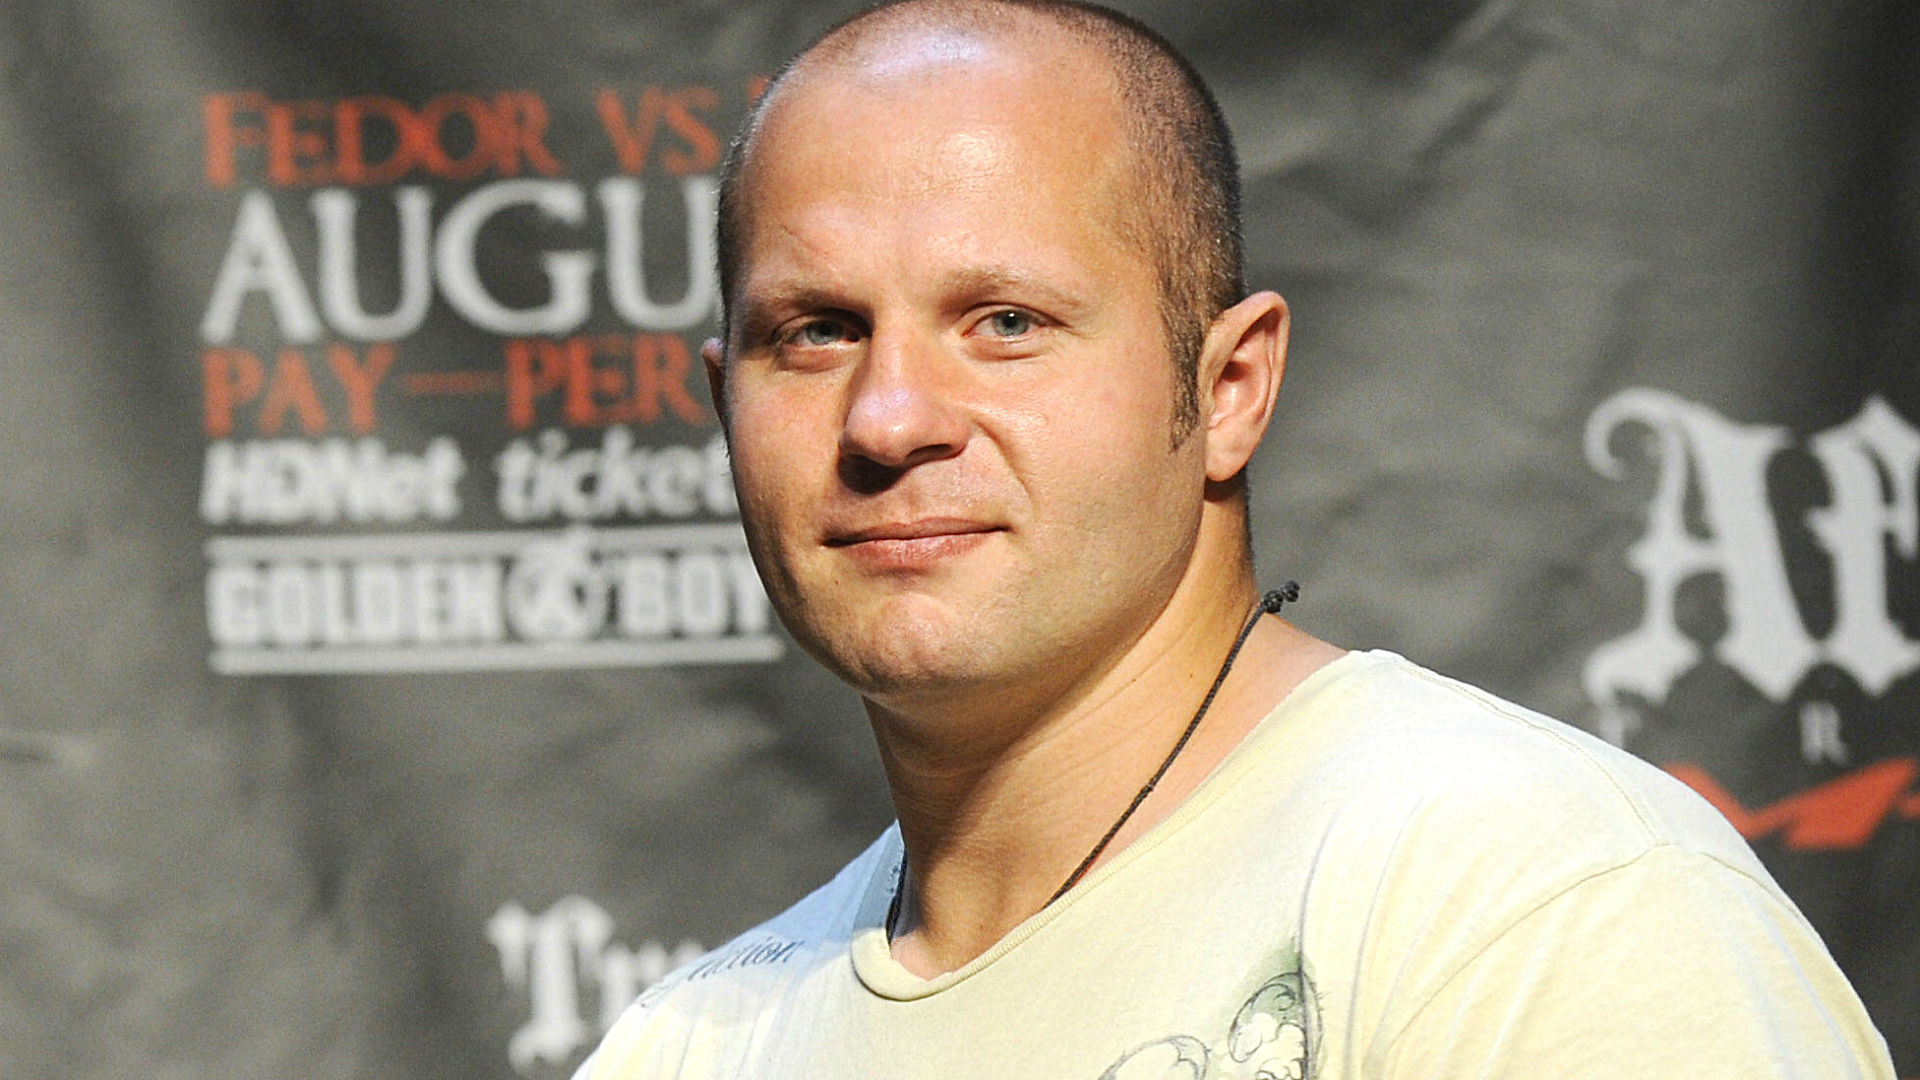 Fedor-123115-Getty-FTR.jpg